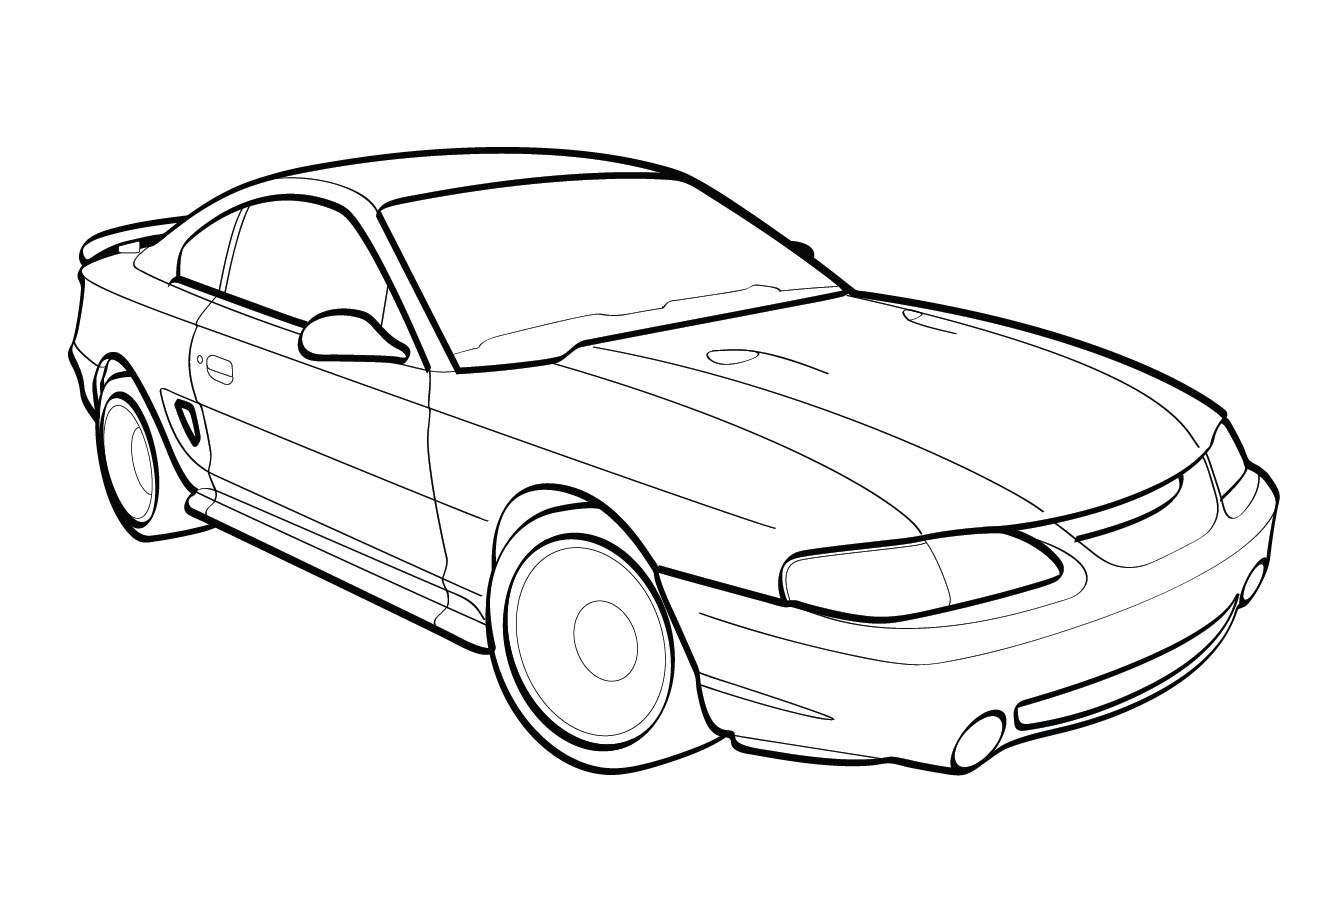 Vector line drawing of a 1998 Ford Cobra Mustang